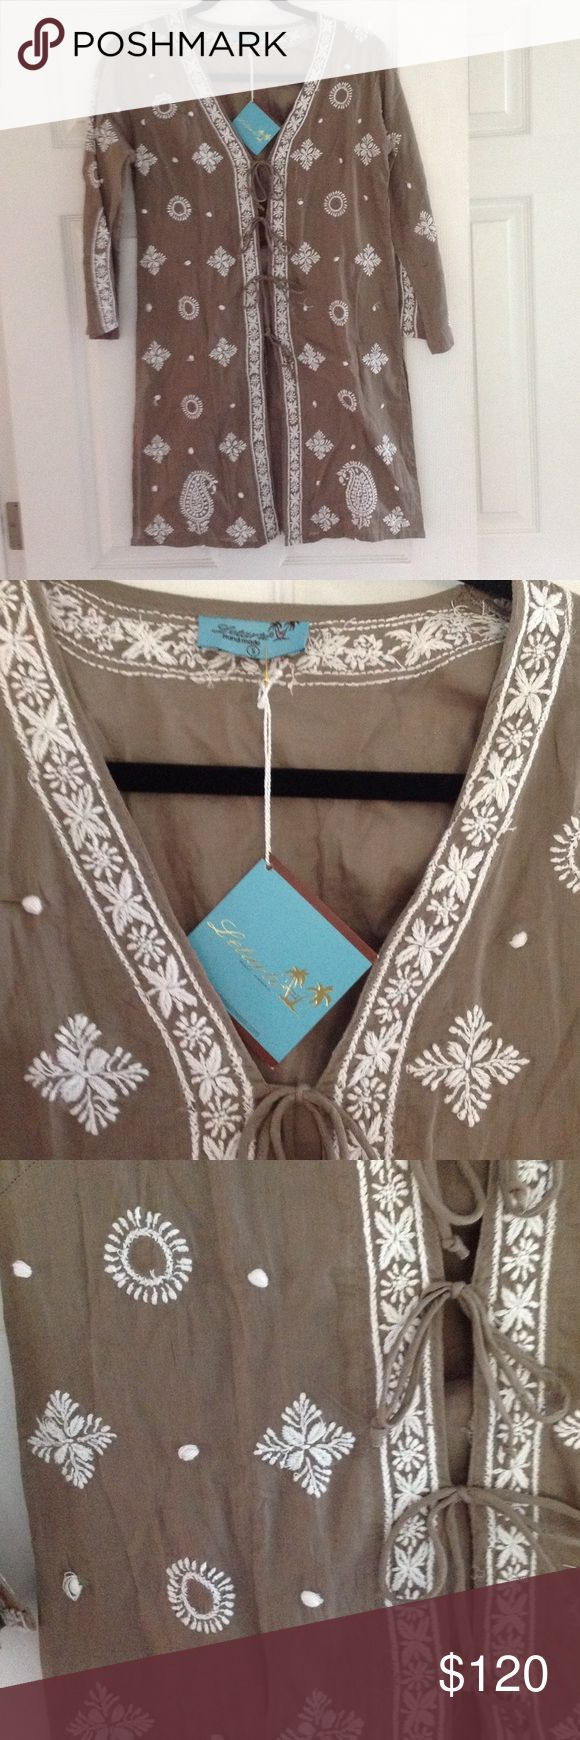 One day sale!  New Letarte coverup New! Handmade!  Org $228 Taupe/green color with white embroidery Letarte Swim Coverups